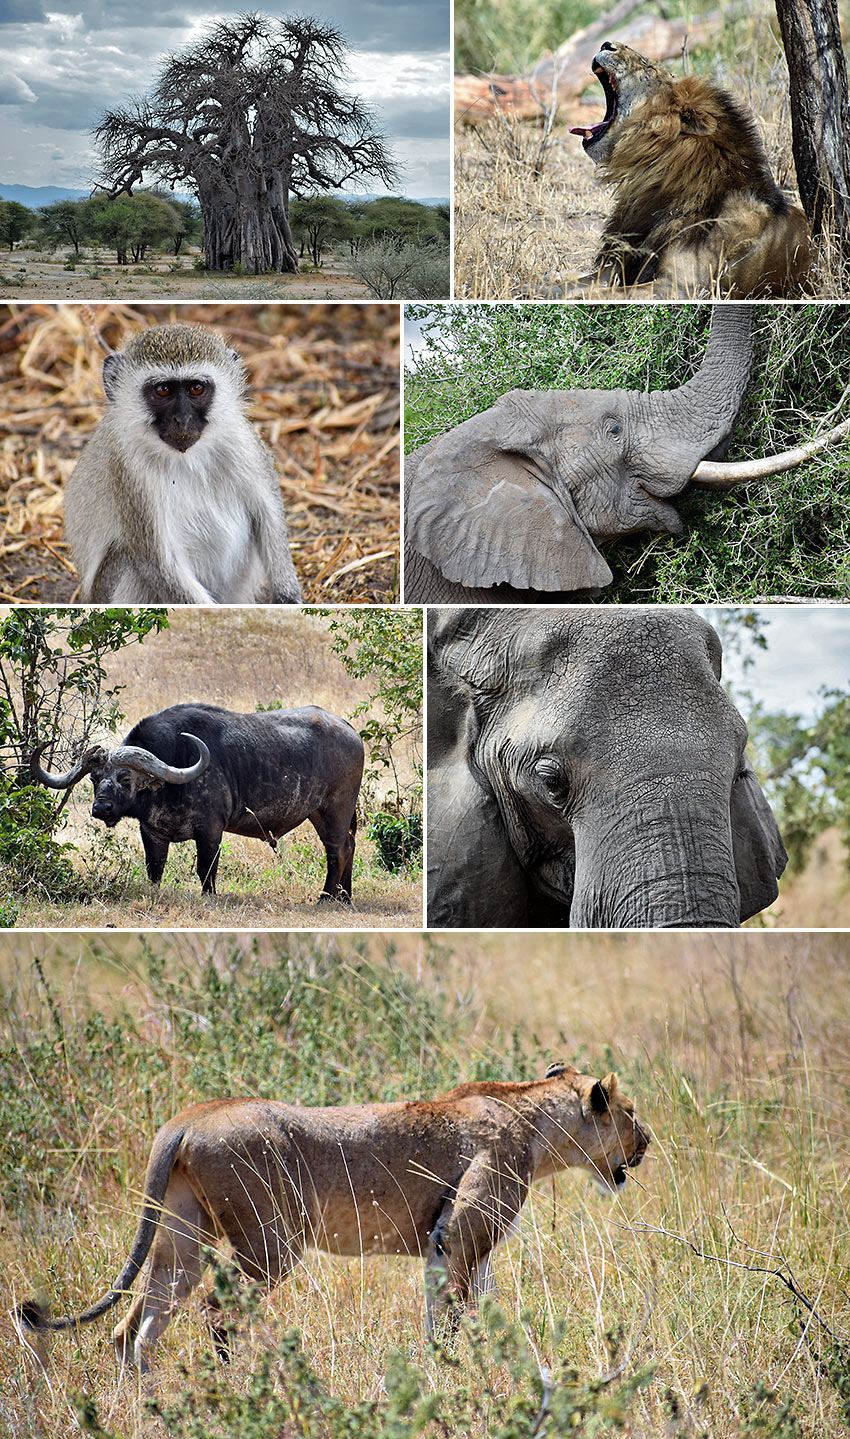 wildlife at Tarangire National Park